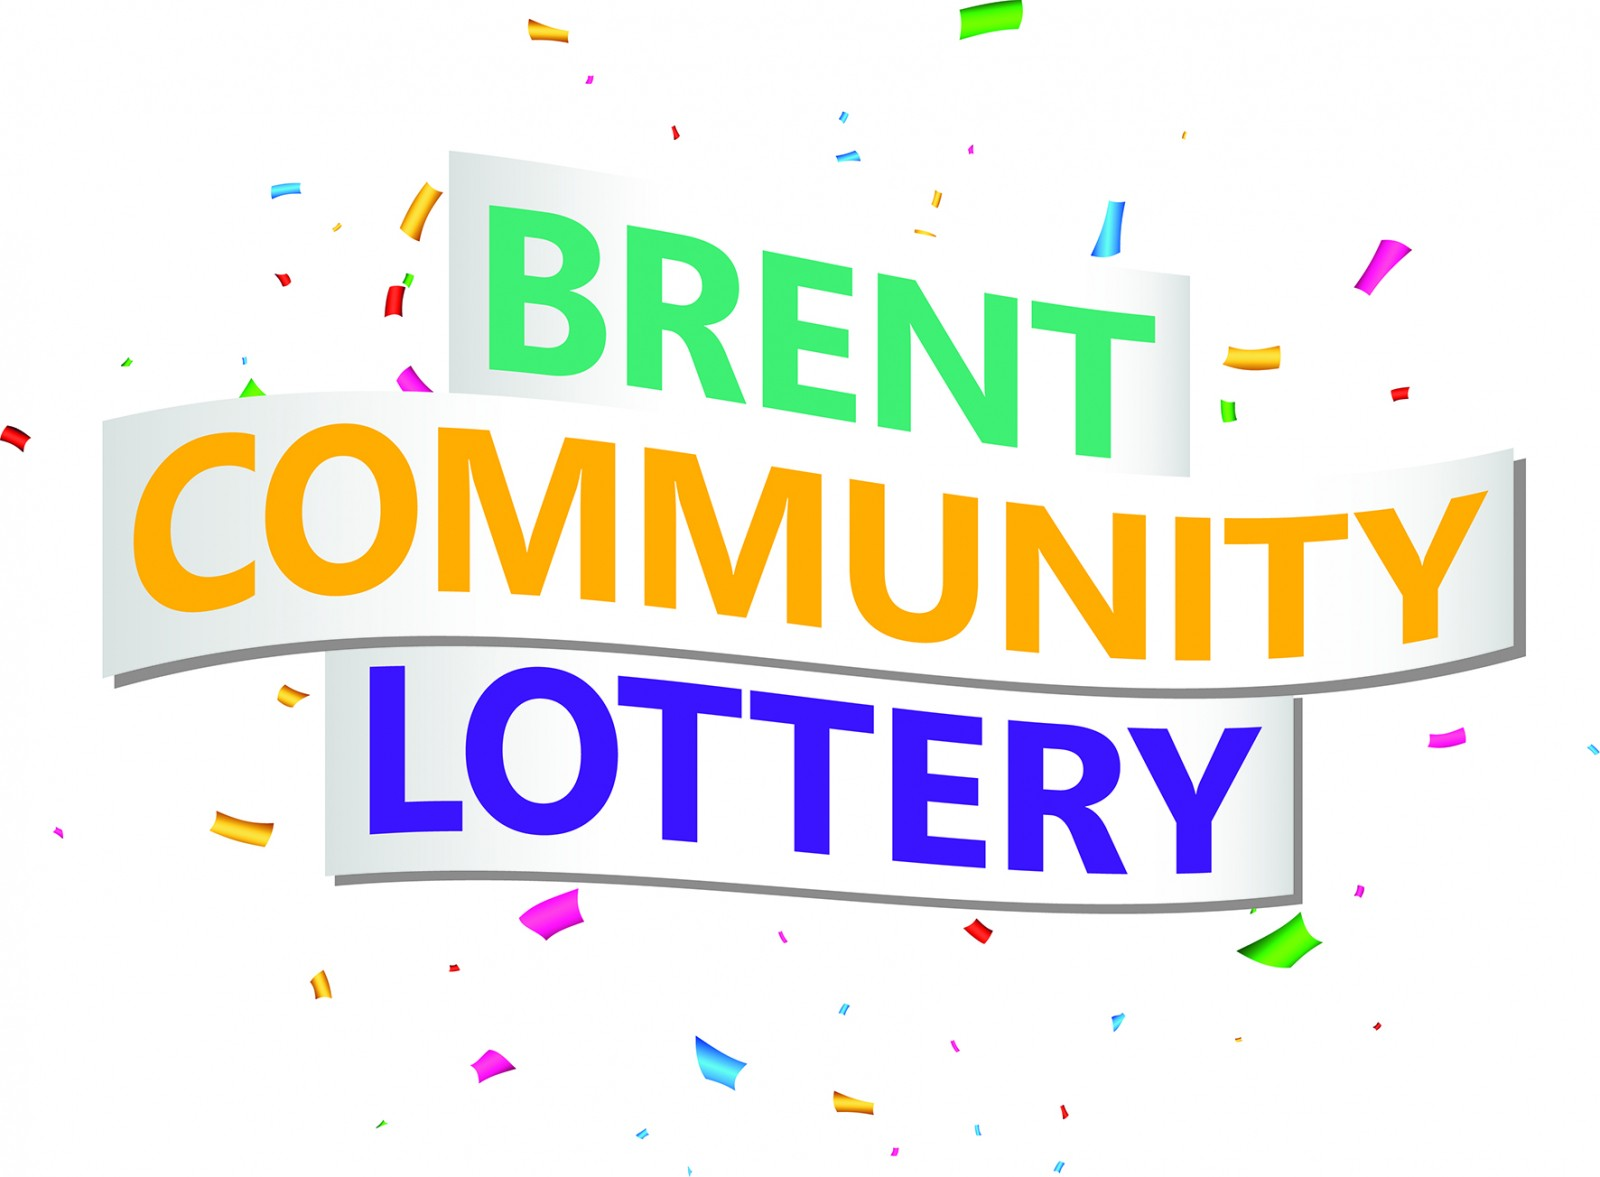 Tickets go on sale today for Brent Community Lottery